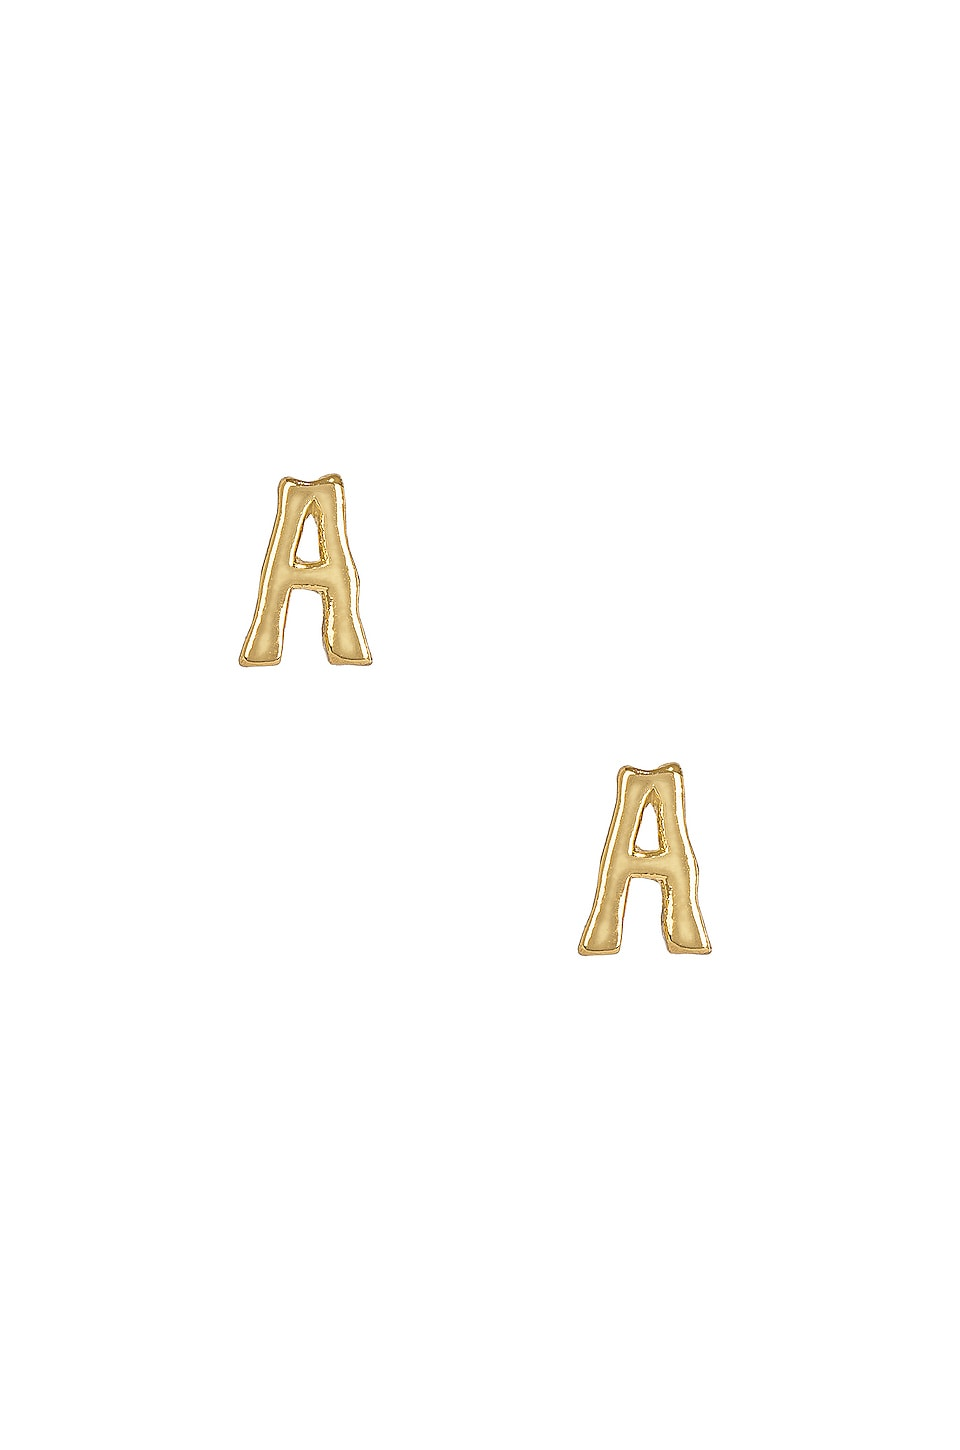 A Initial Stud Earrings